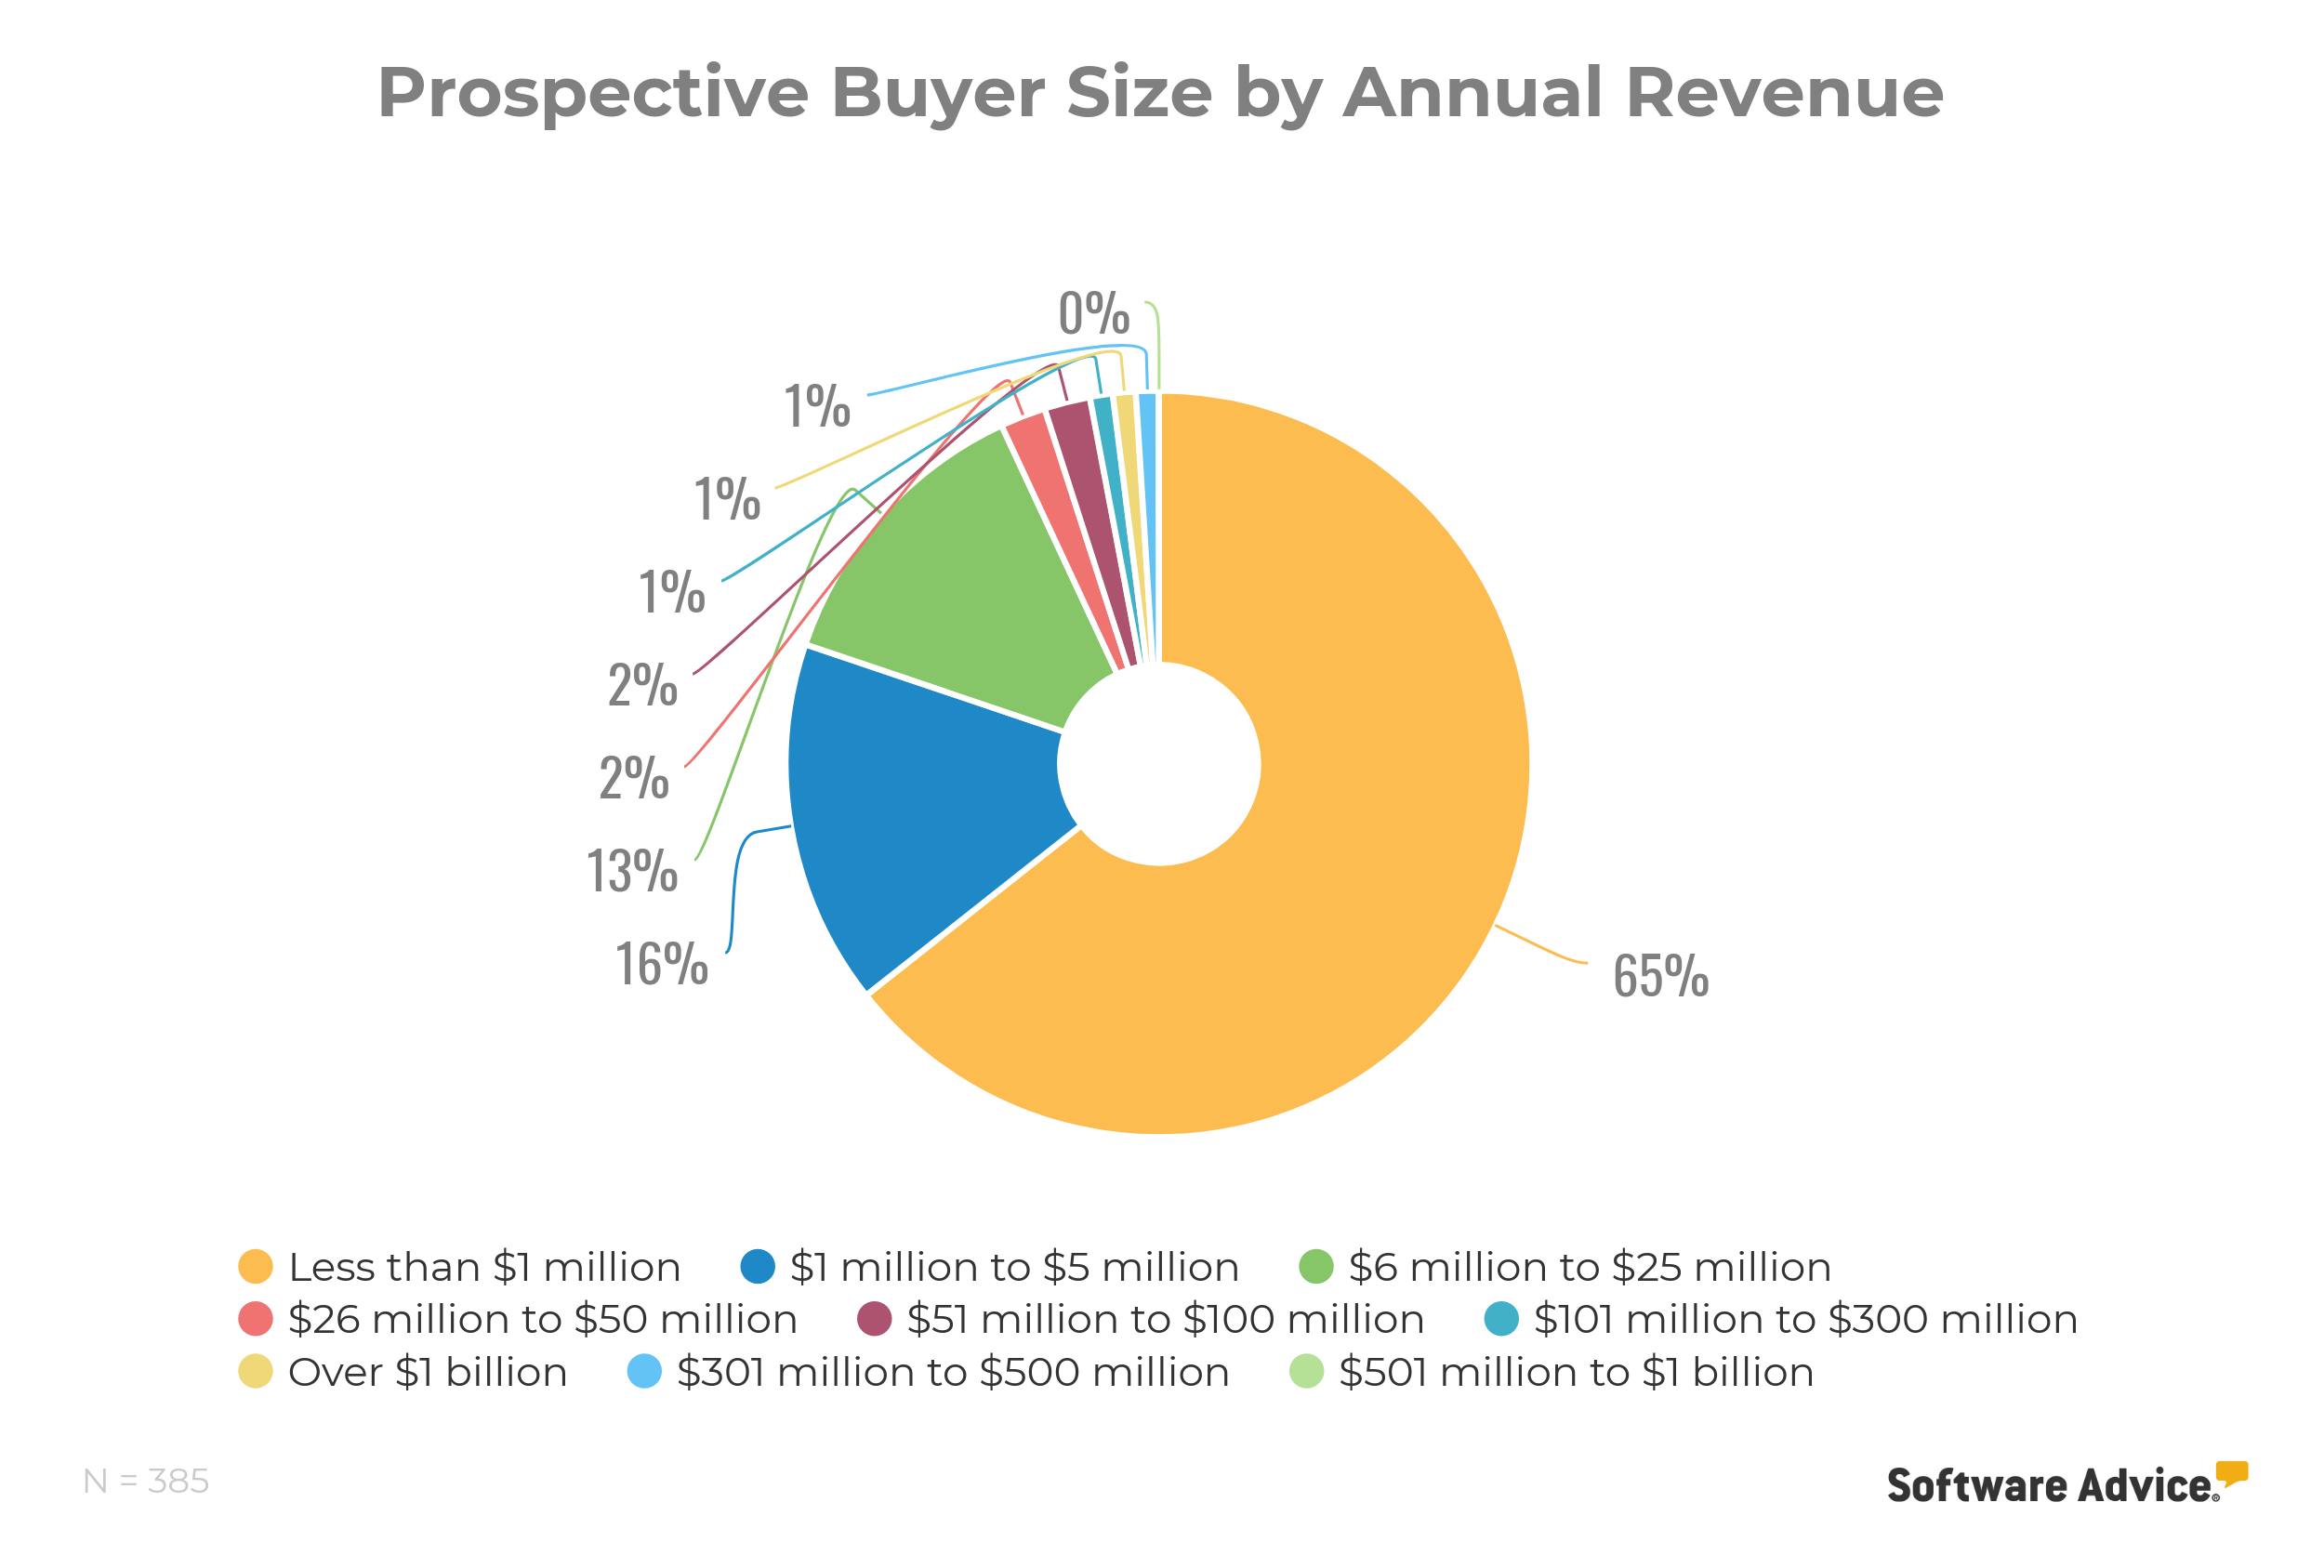 Prospective CRM Buyer Size by Annual Revenue